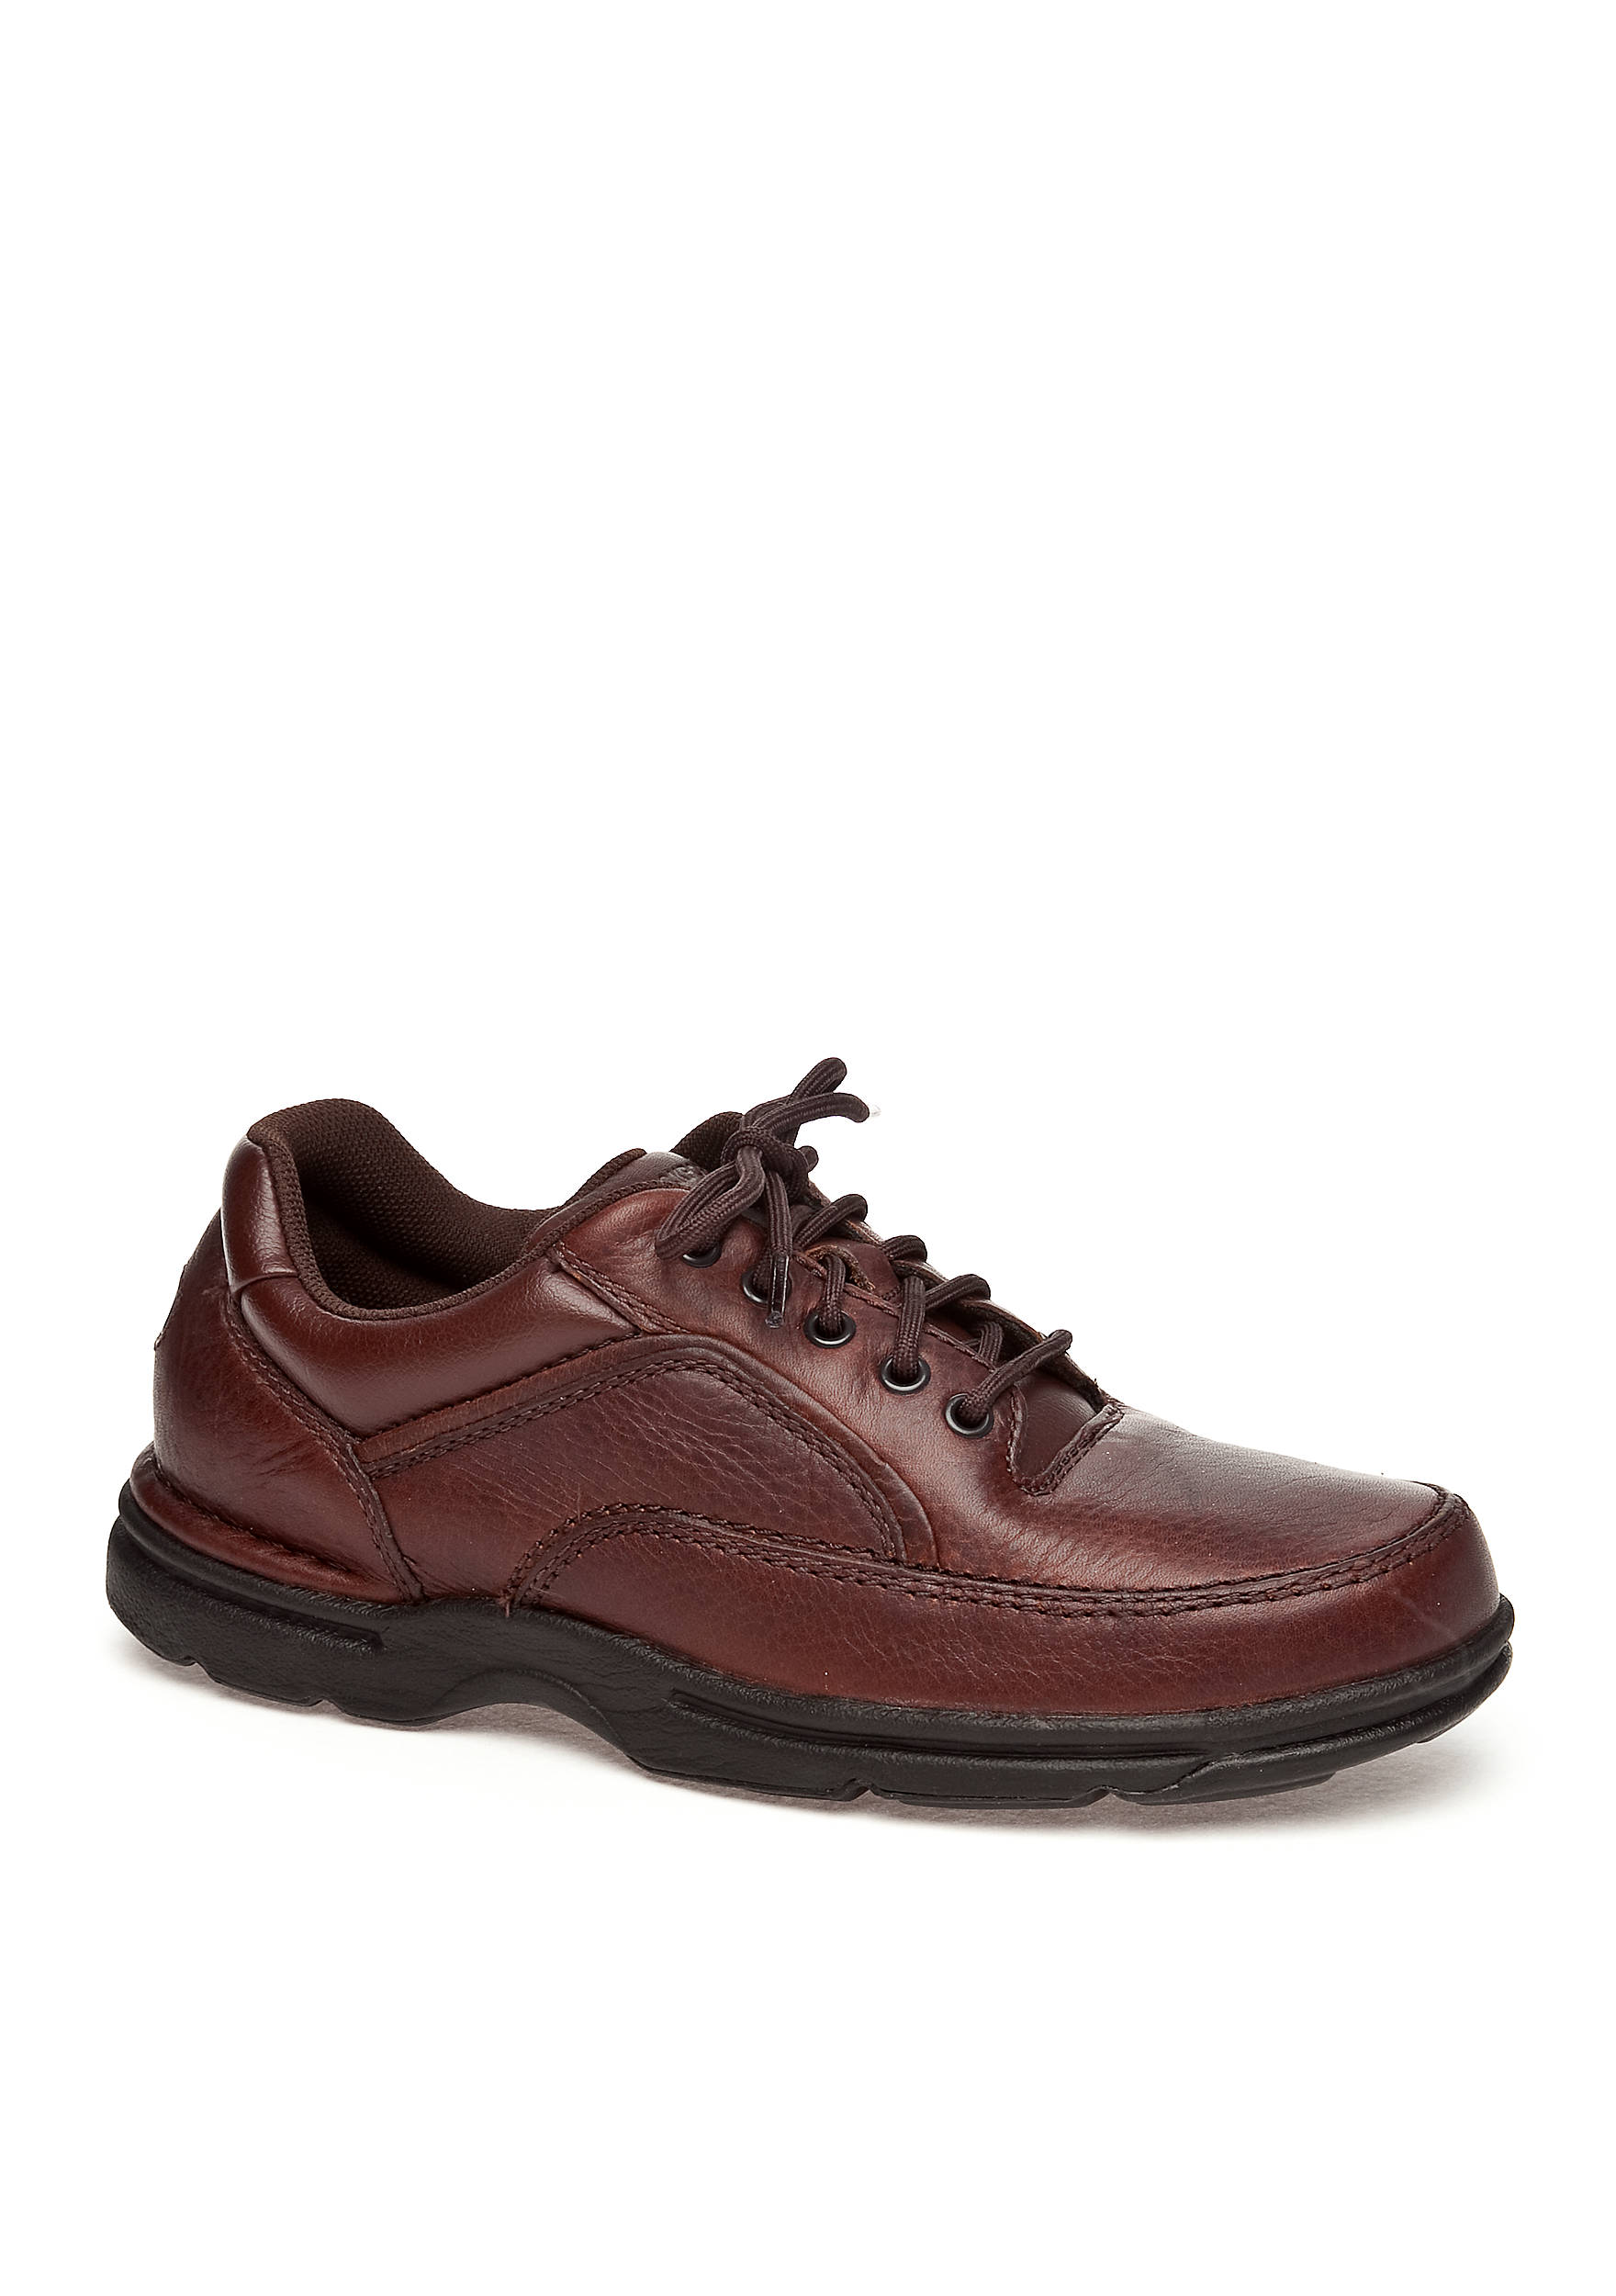 Eureka Casual Lace Up Extended Sizes Available